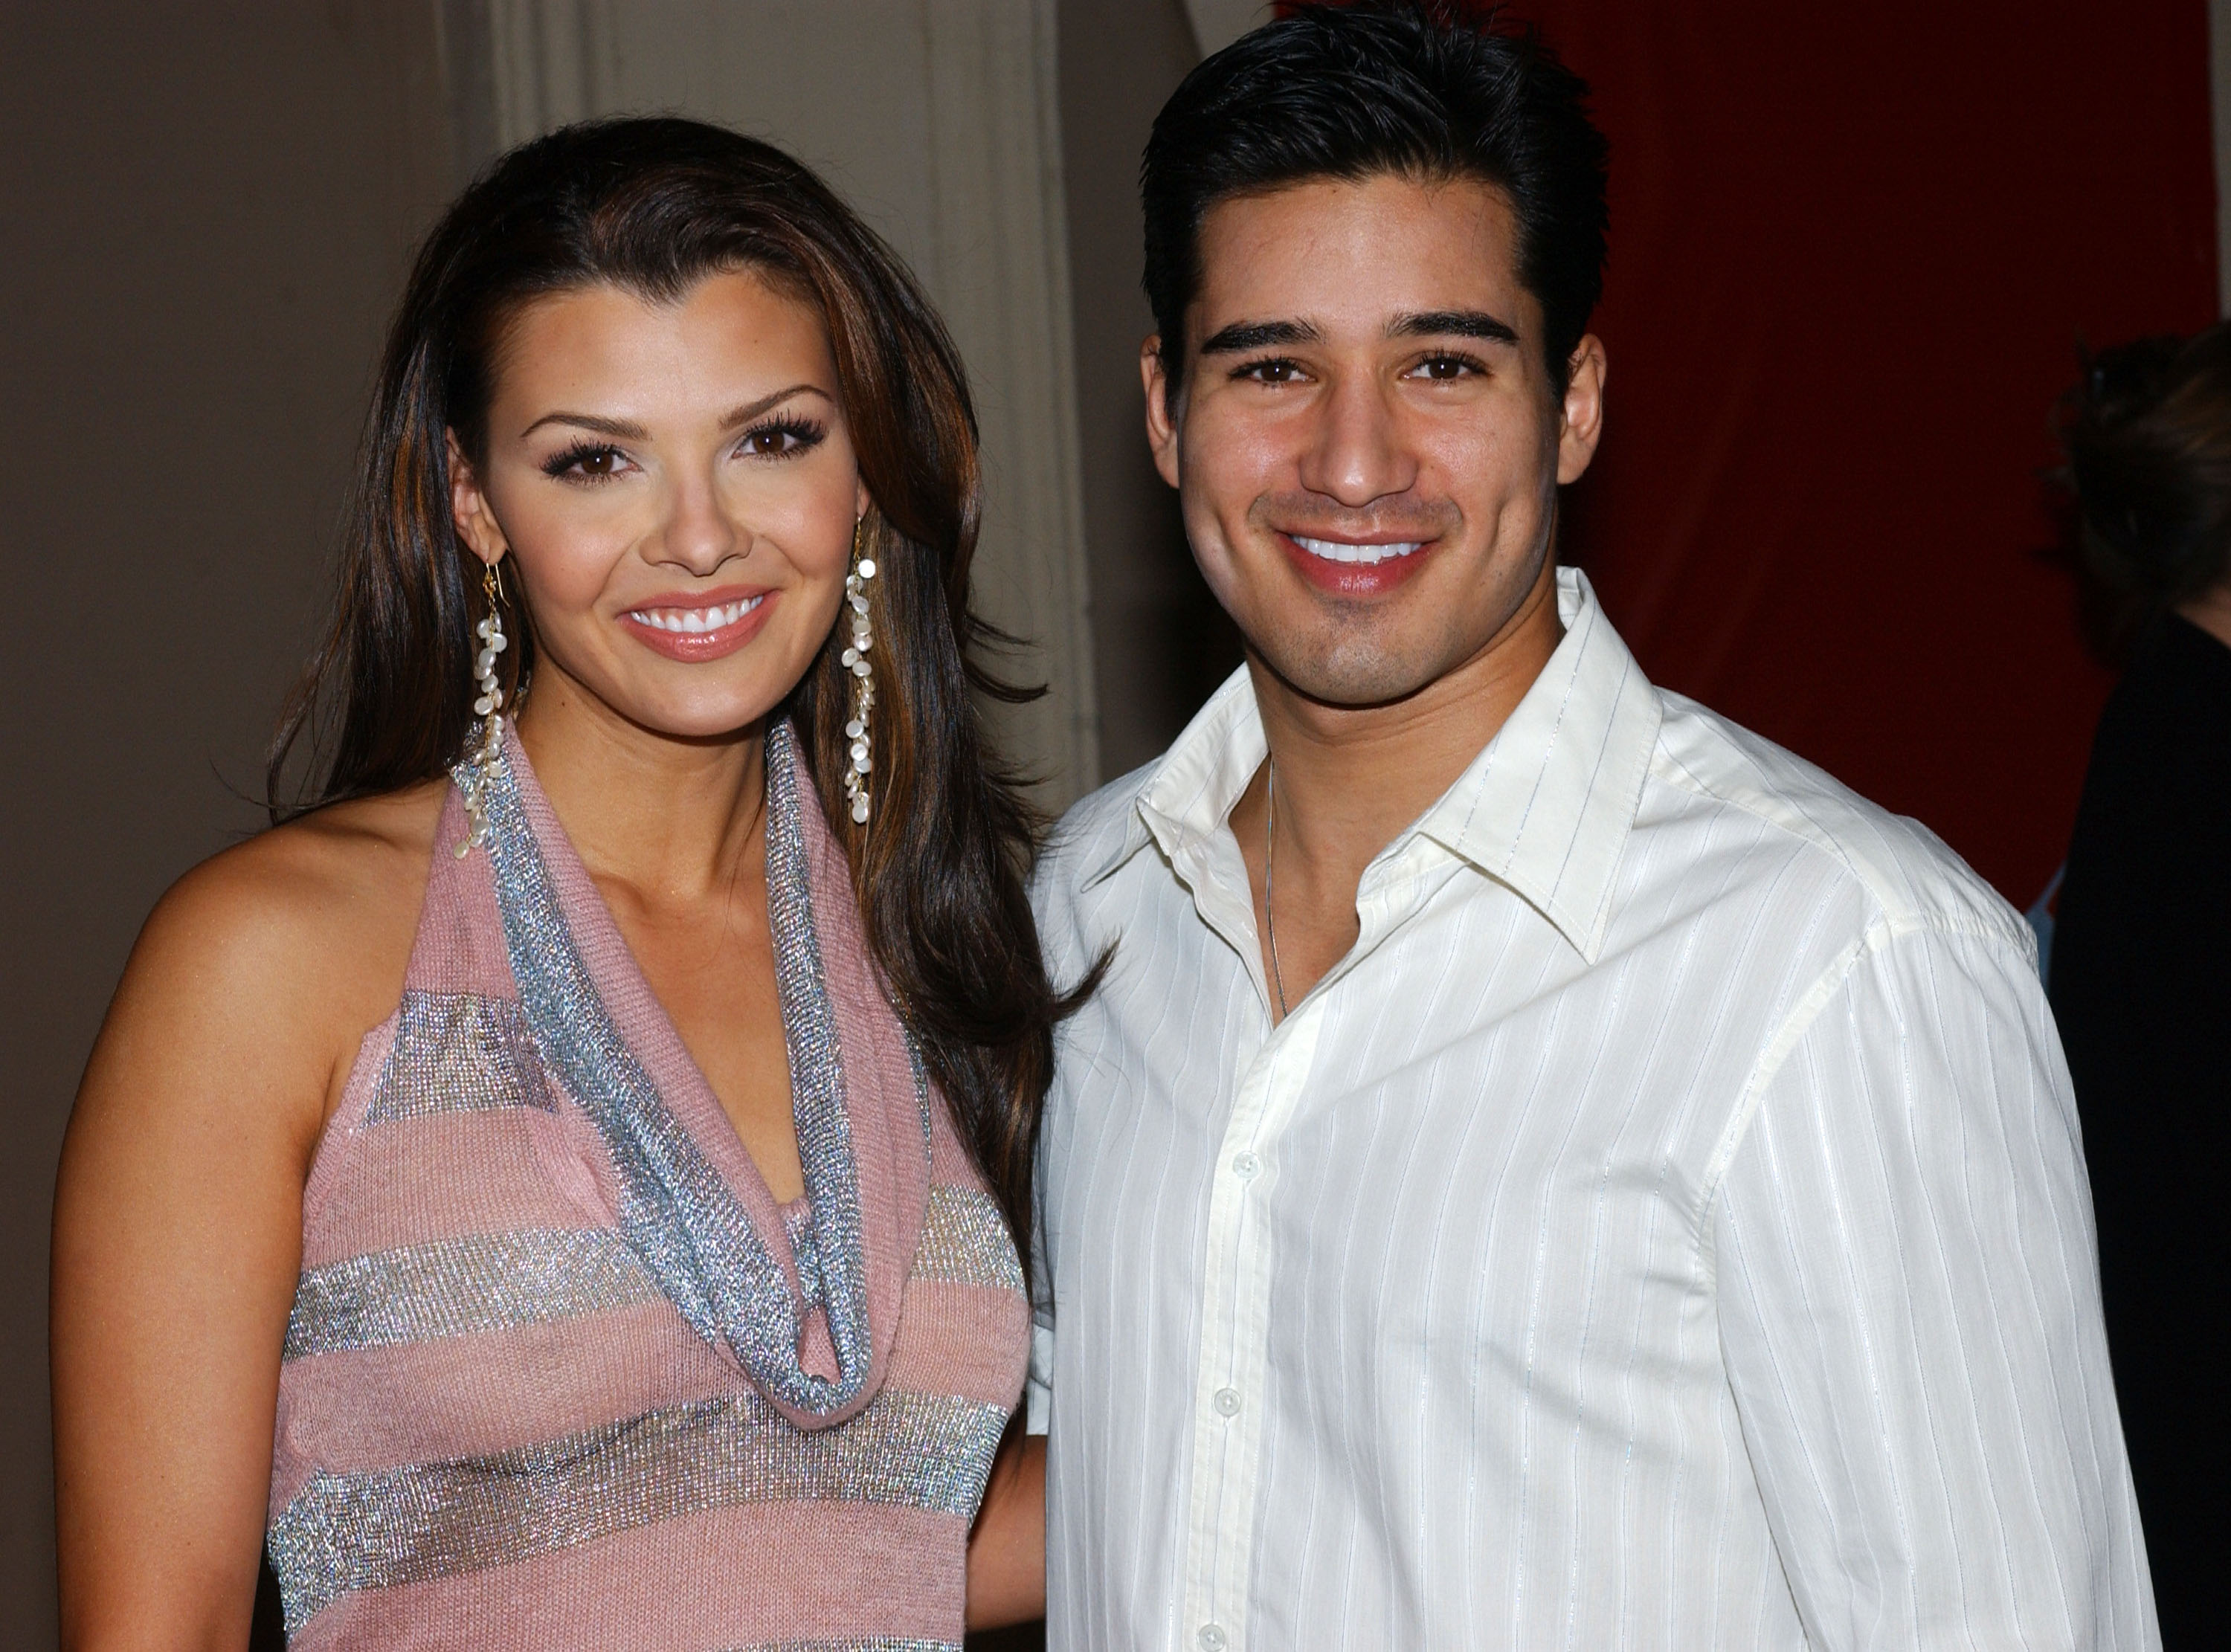 Image result for Ali Landry and Mario Lopez: 18 days